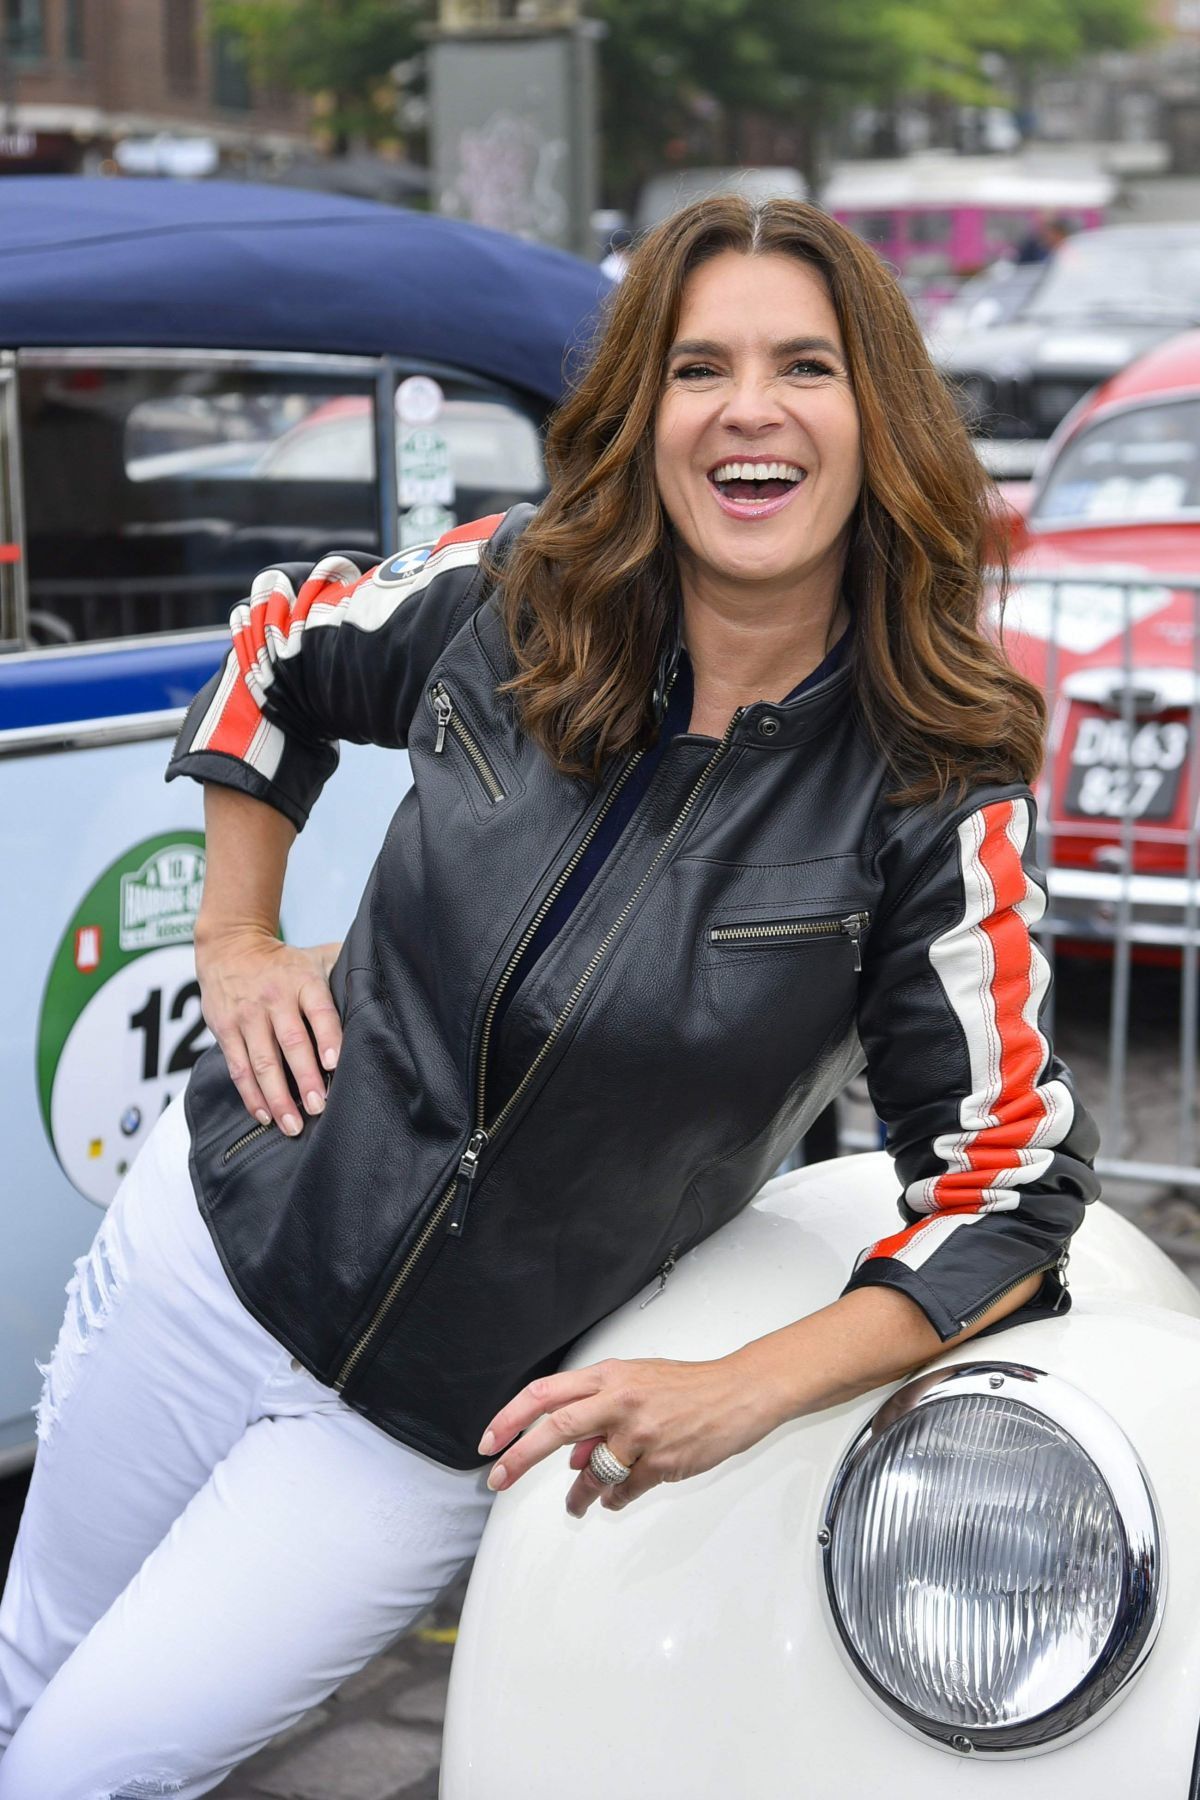 KATARINA WITT at 10th Hamburg - Berlin Classic Car Rally 08/24/2017